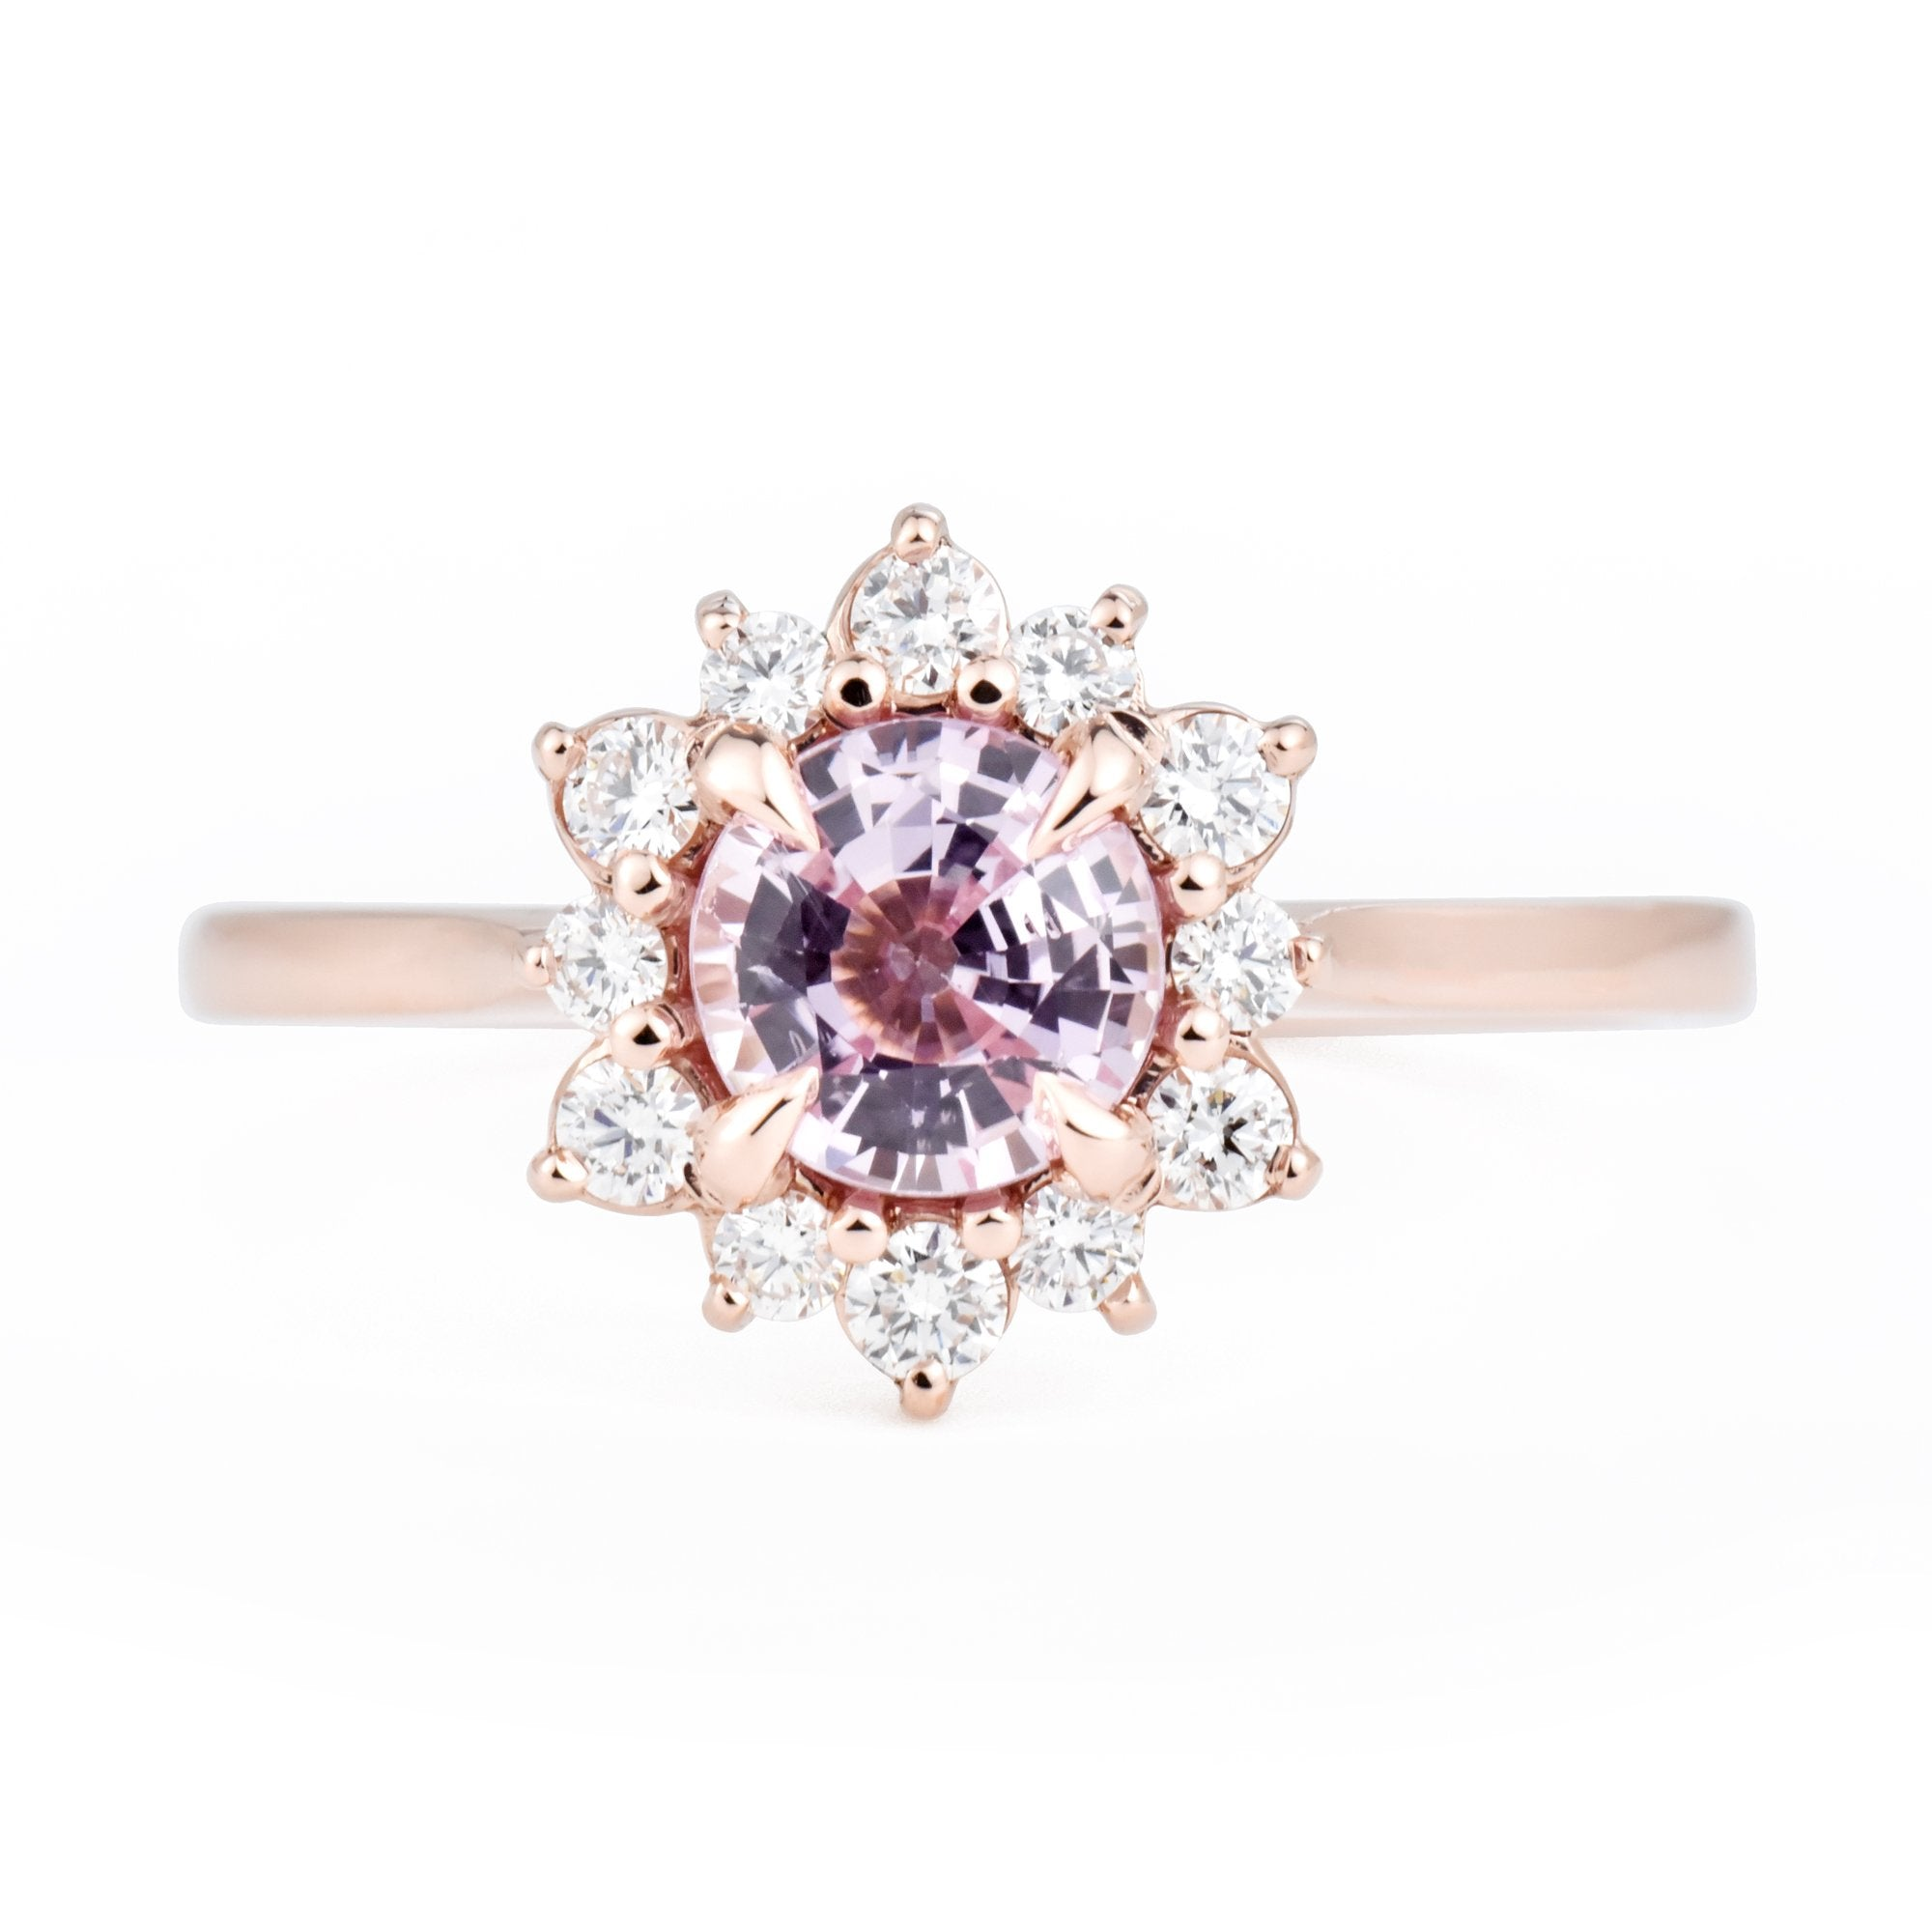 1ct Pink Sapphire Marisol Canadian Diamond Engagement Ring in Rose Gold